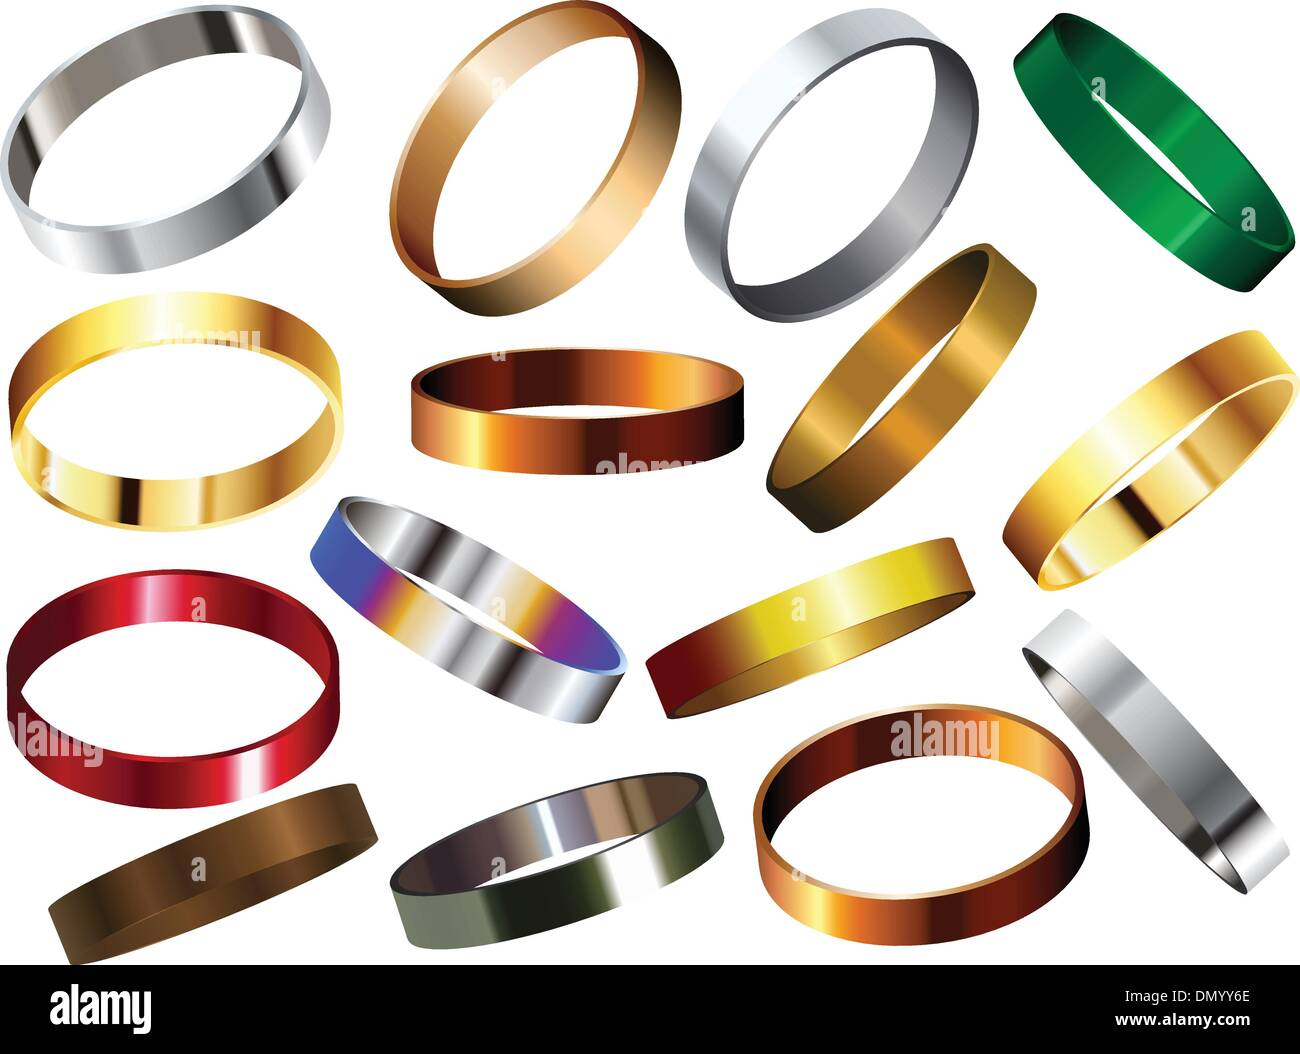 Metal Rings Bracelets Wristband Set - Stock Image